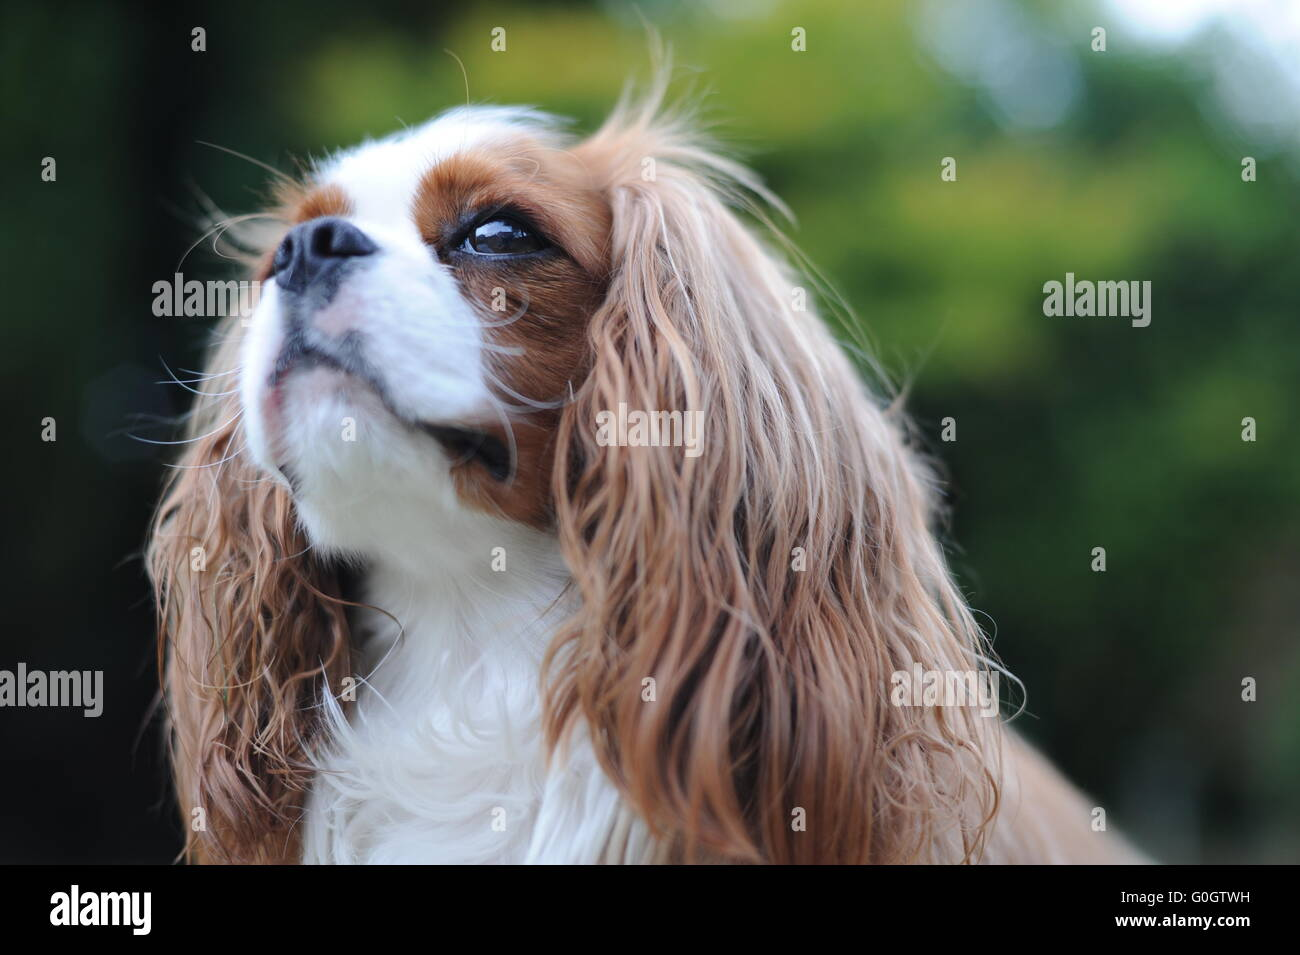 A King Charles Cavalier Dog on a warm sunny summer's day